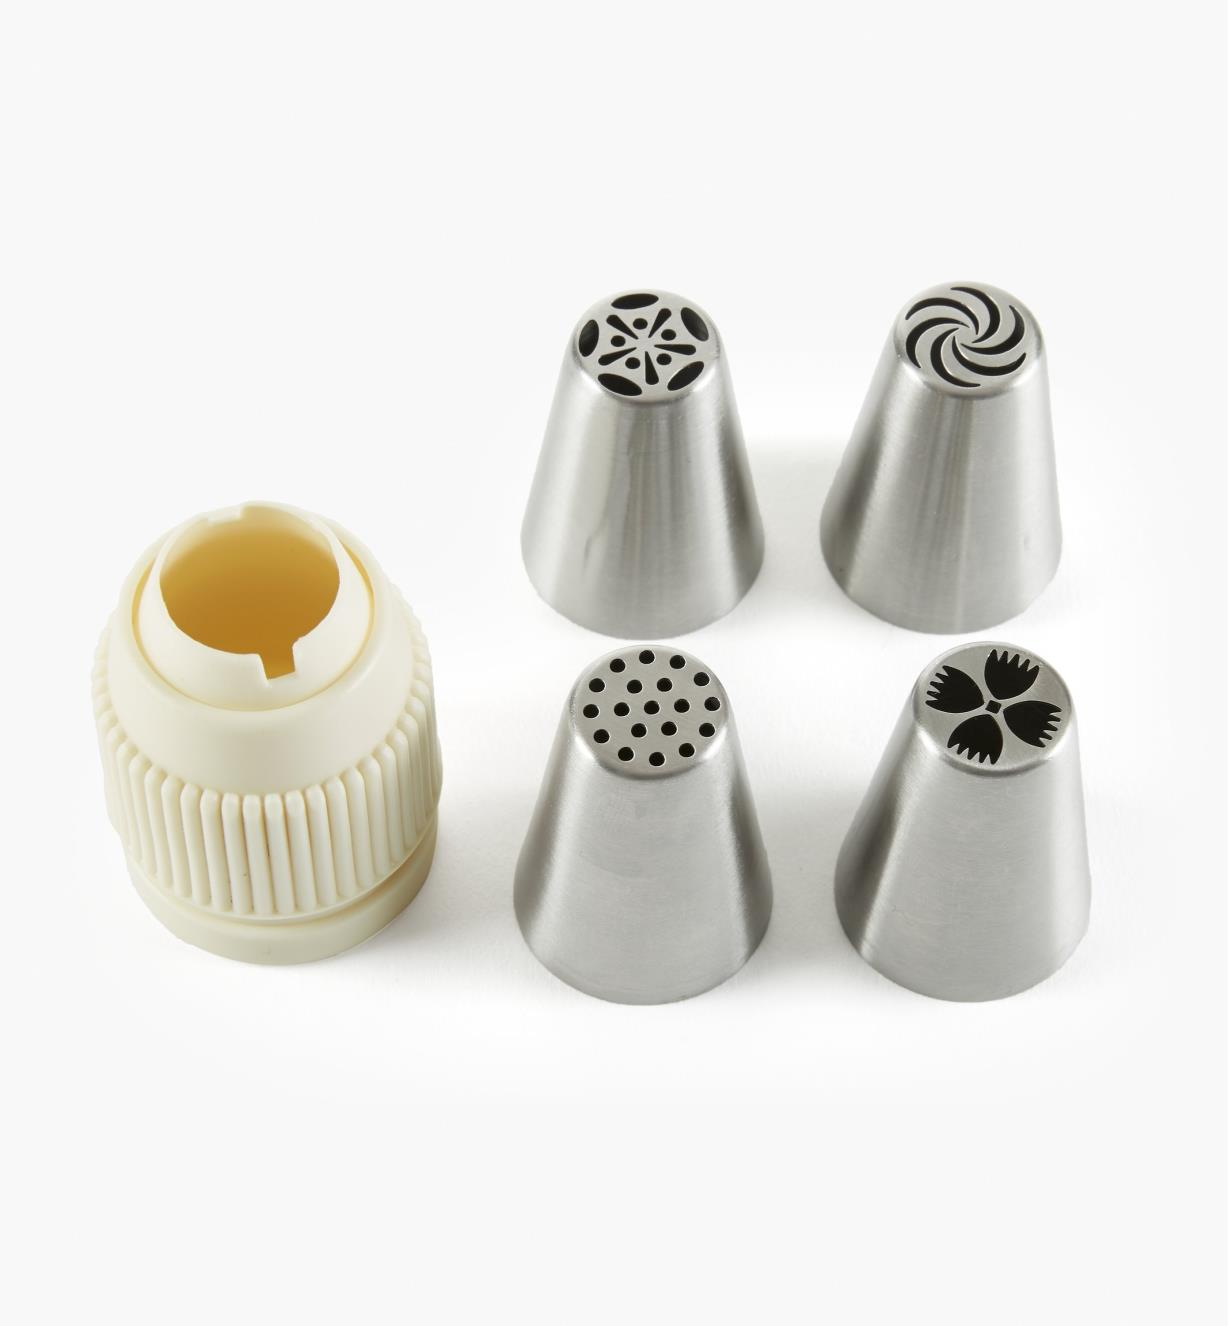 EV710 - 4 Medium Decorative Piping Tips & Coupler